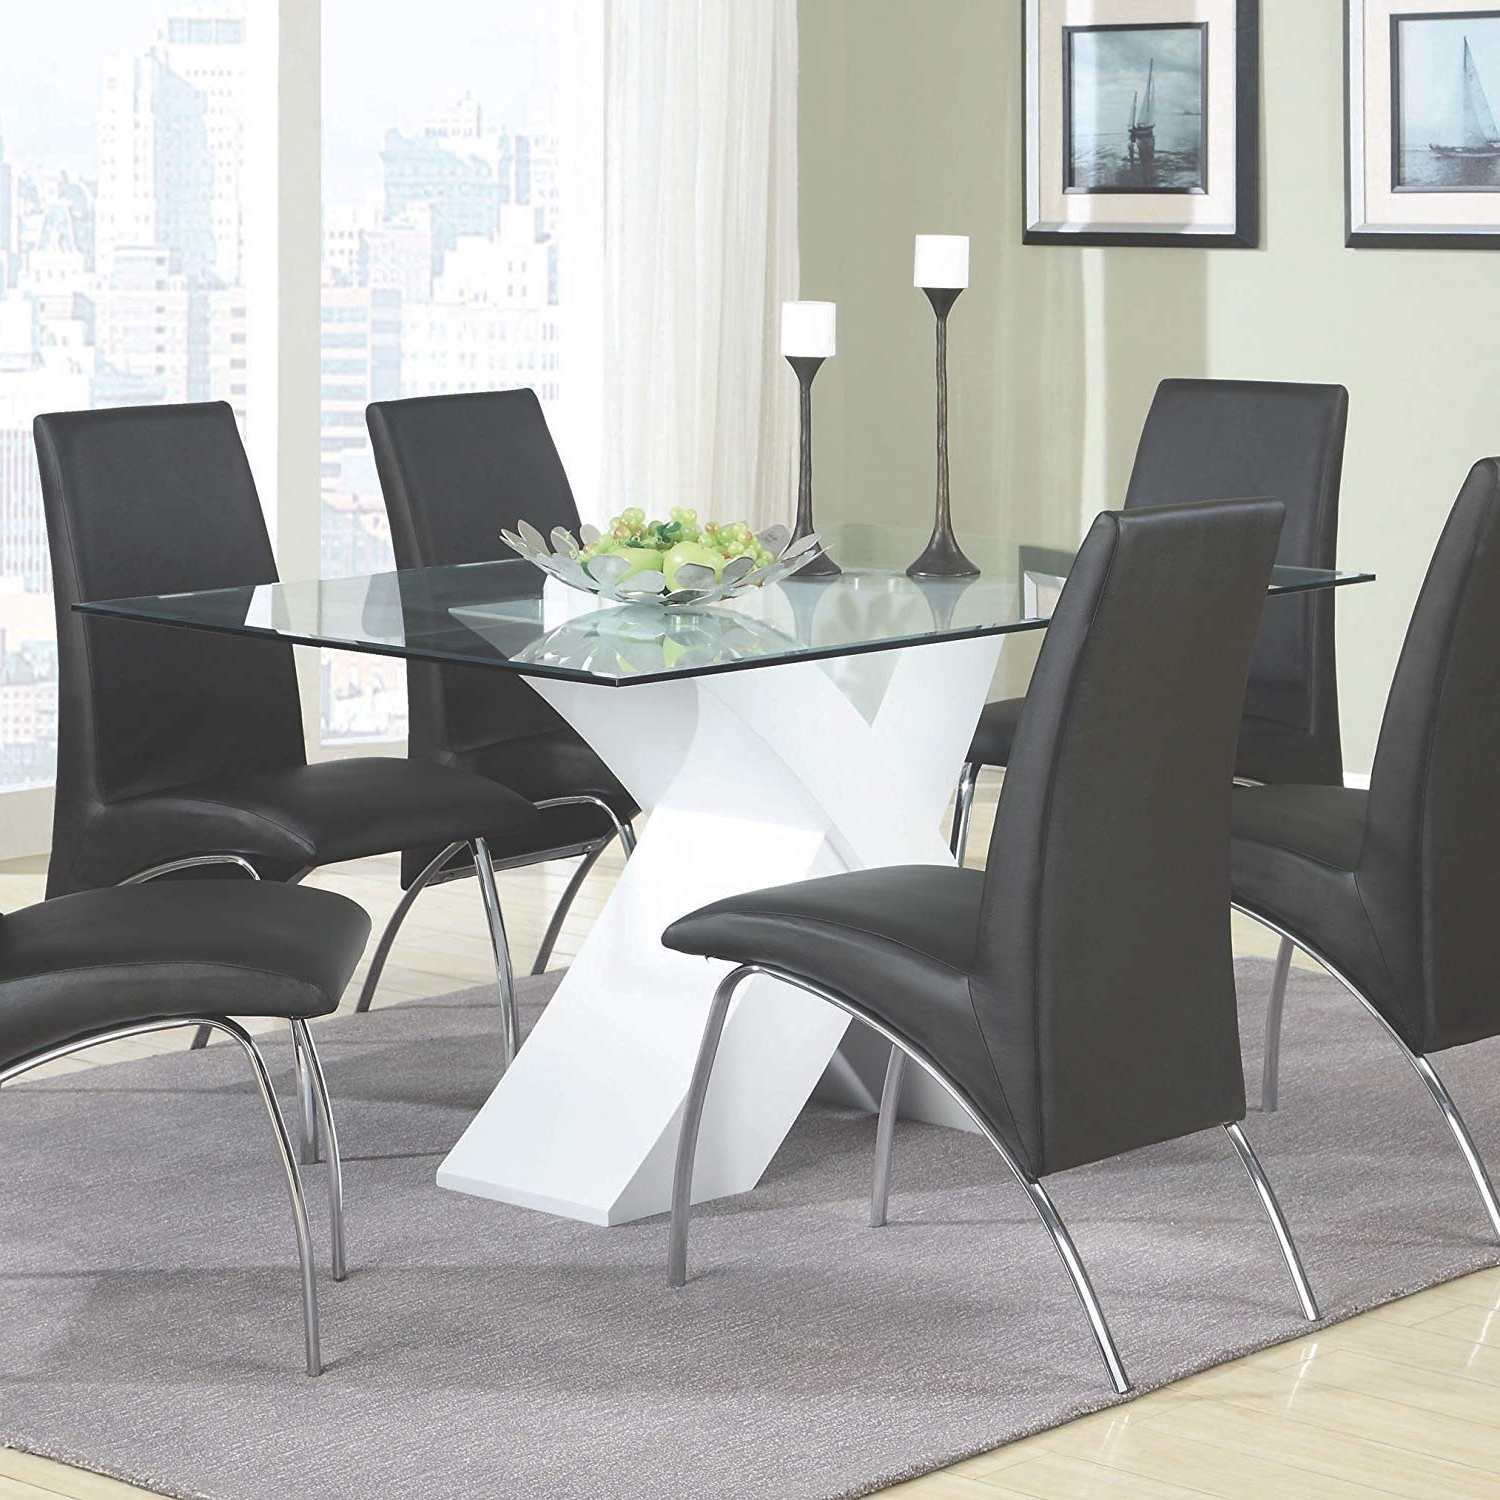 Recent Glass Dining Tables Sets Pertaining To Amazon: Coaster Home Furnishings 120821 Contemporary Glass Top (View 21 of 25)